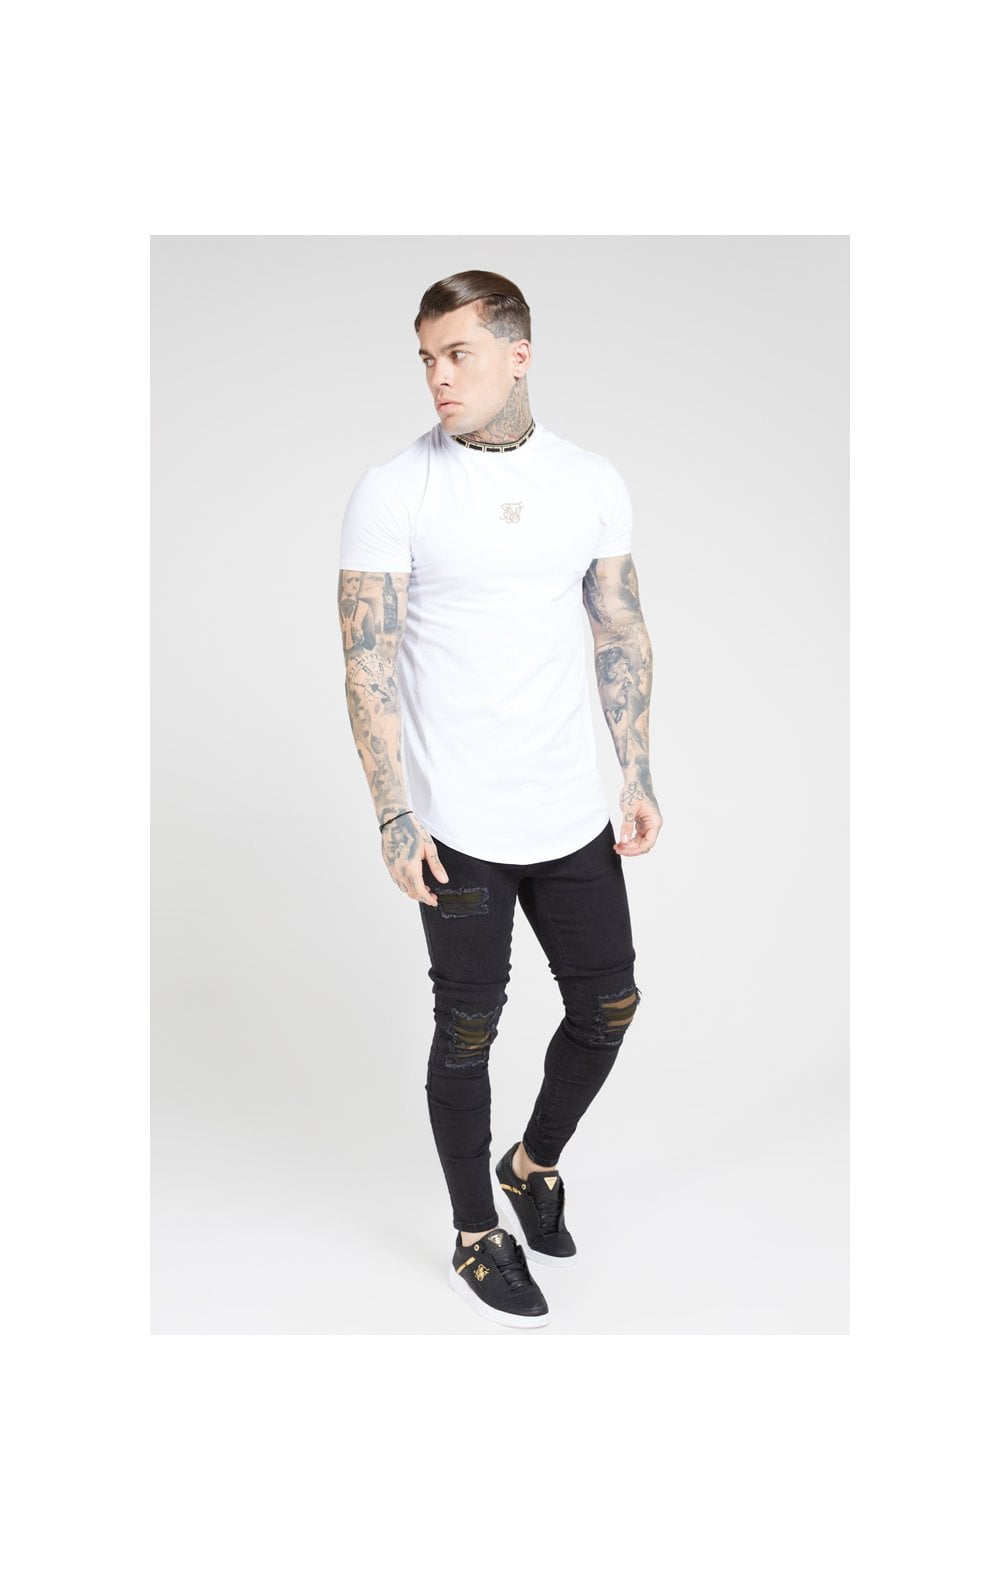 SikSilk Tape Collar Gym Tee - White & Gold (2)